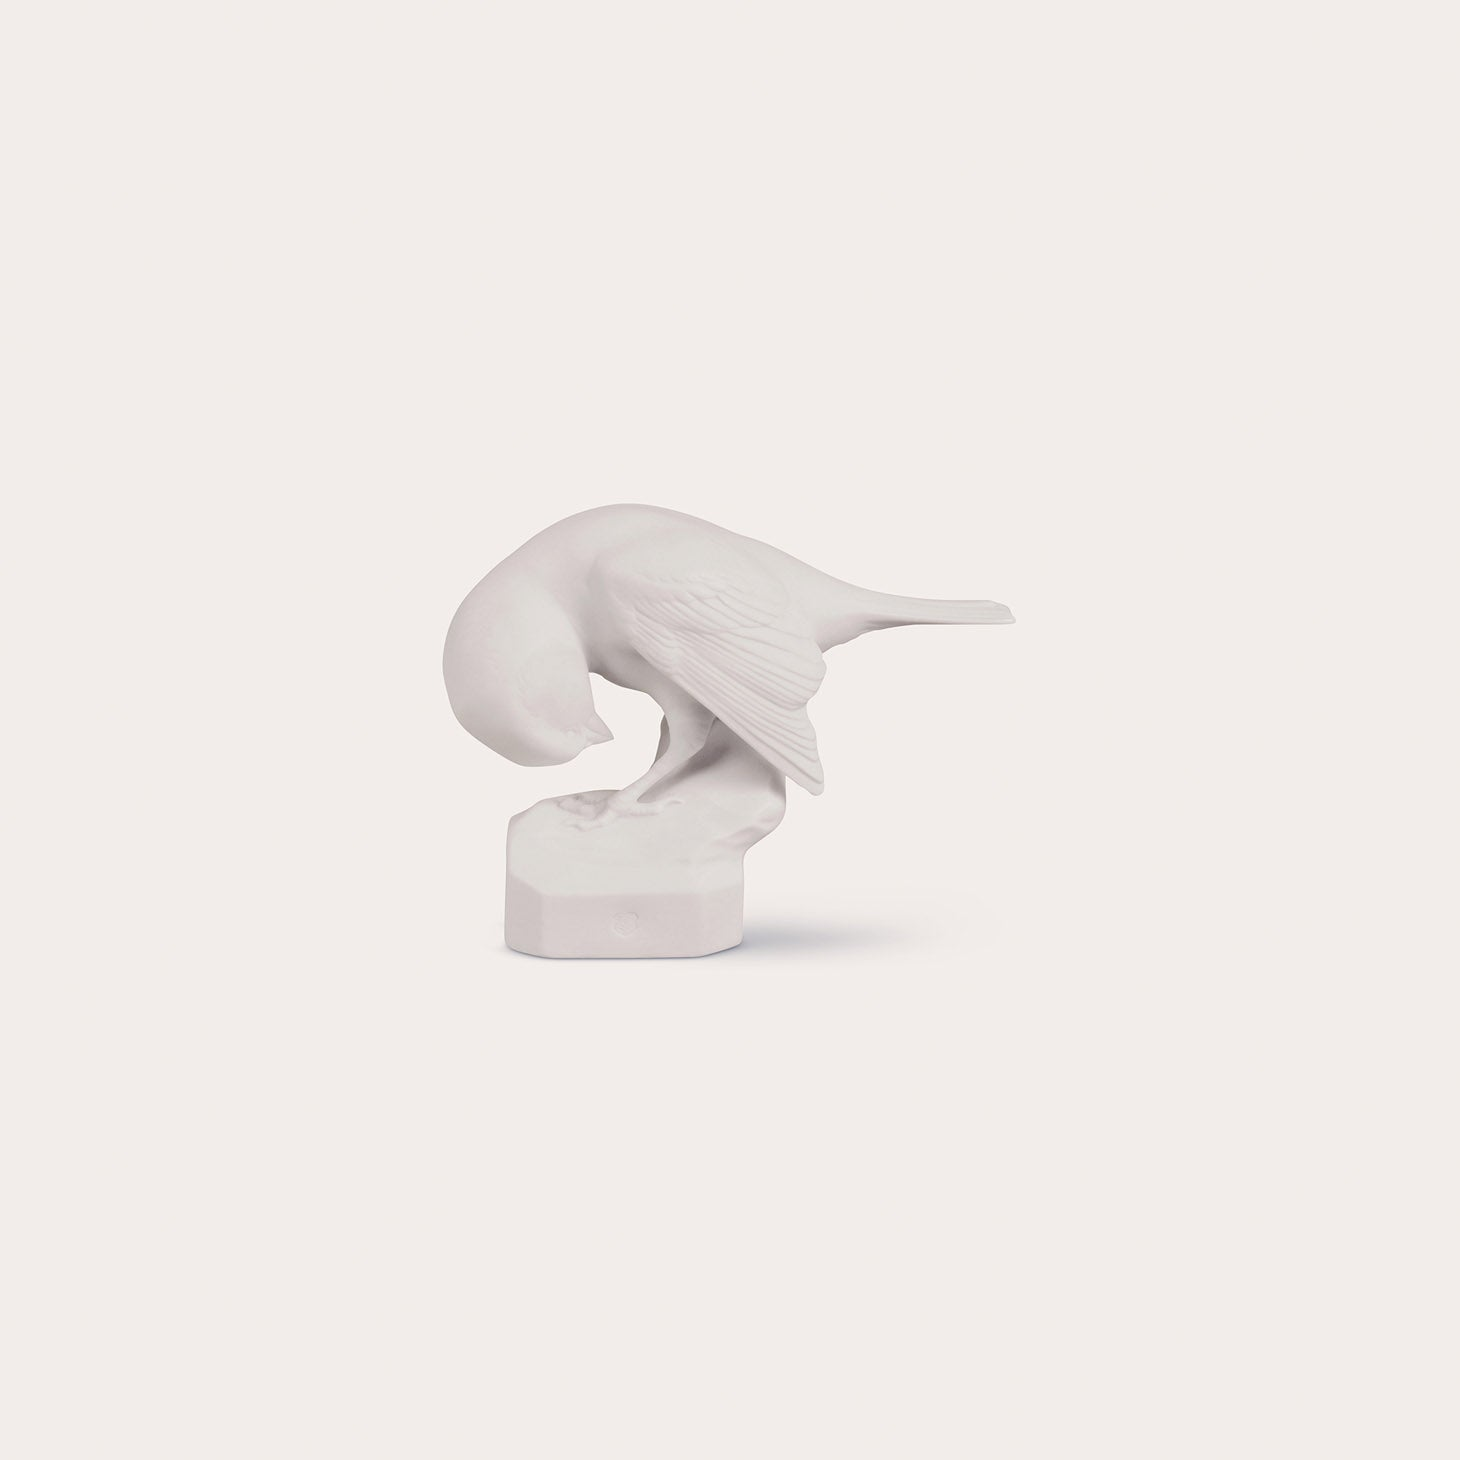 Birds-Sparrow Accessories Nymphenburg Designer Furniture Sku: 542-100-10105